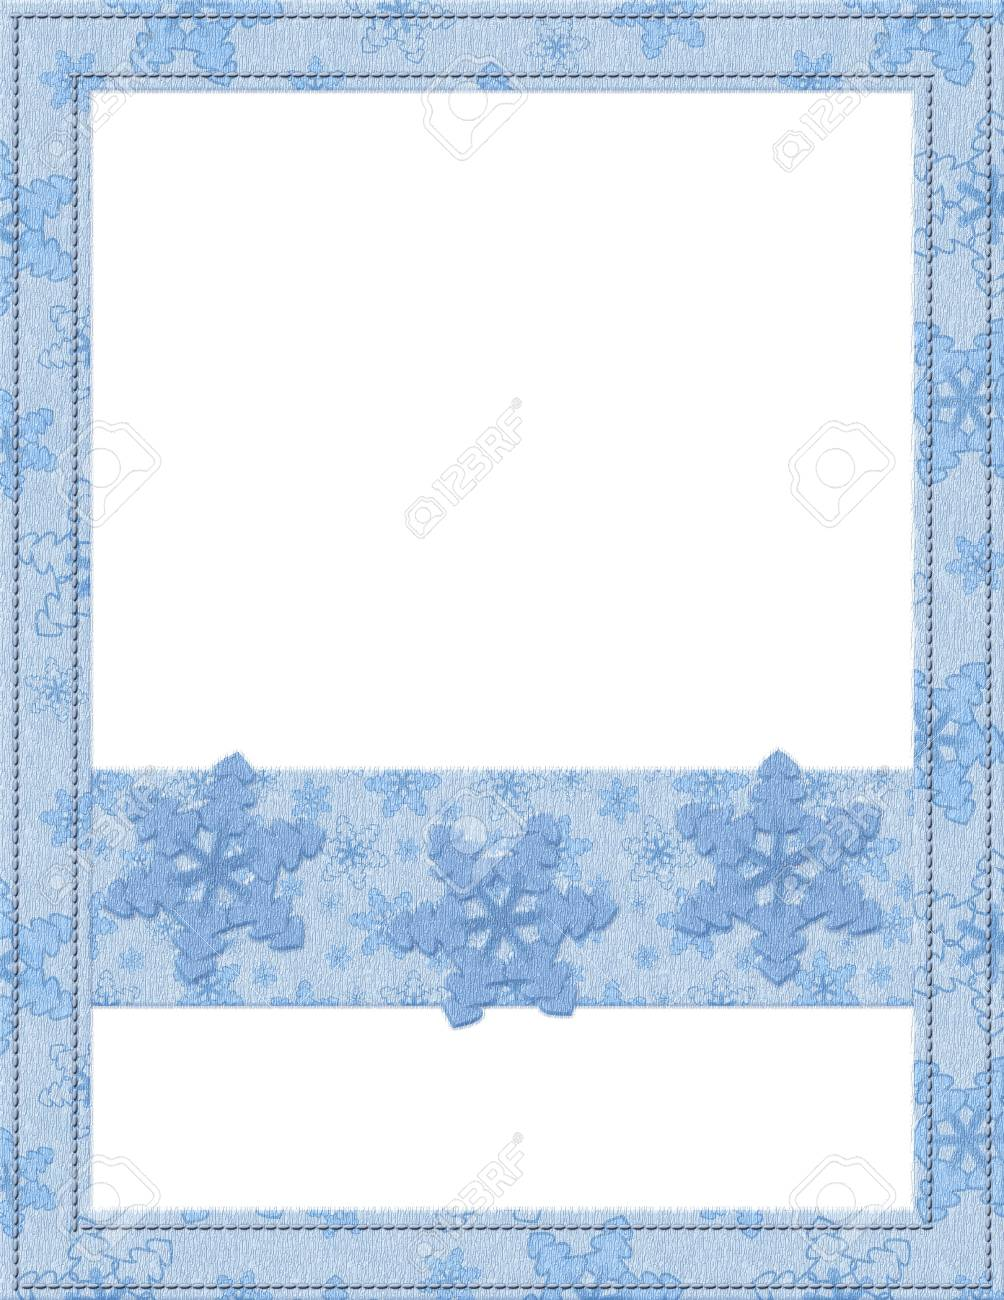 Blue and White Snowflake Frame for your message or invitation with copy-space in the middle Stock Photo - 15912655